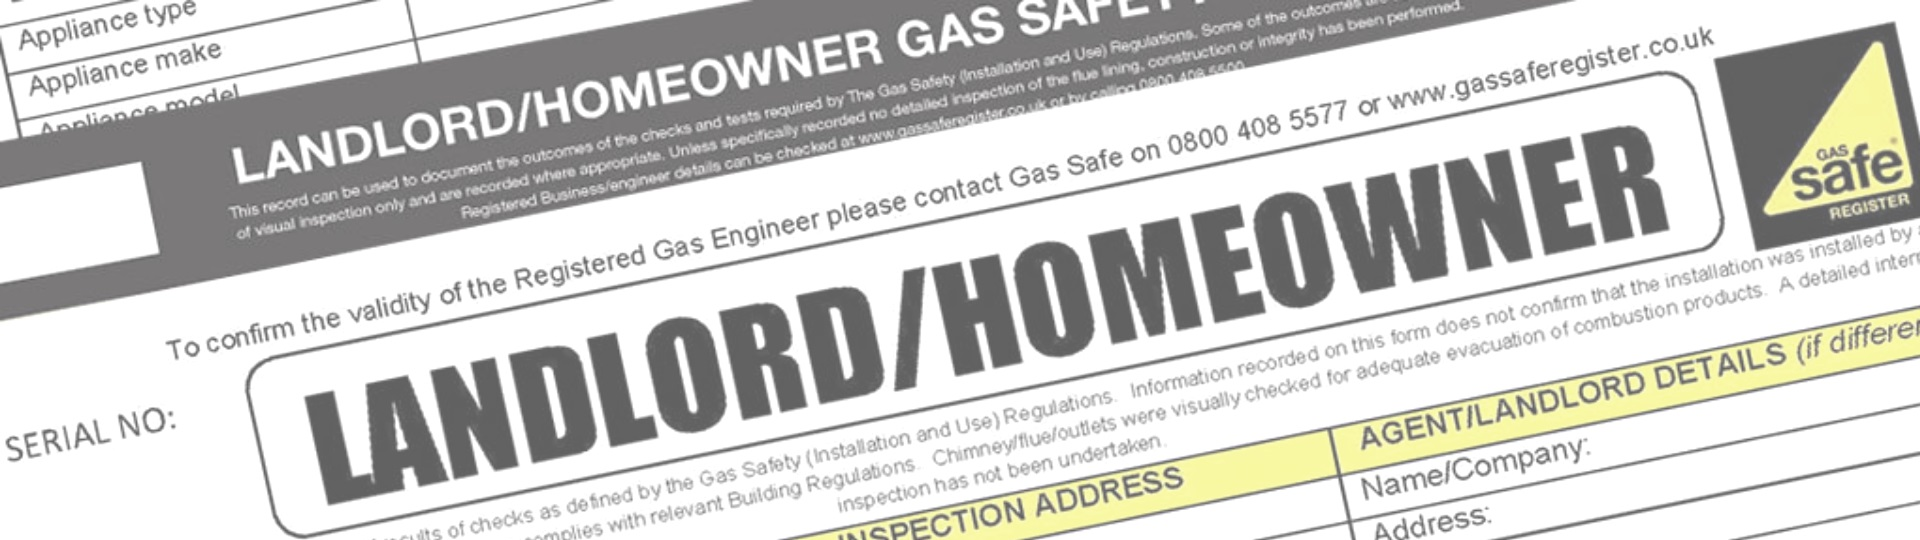 Gas Saftey Certificates Whitchurch